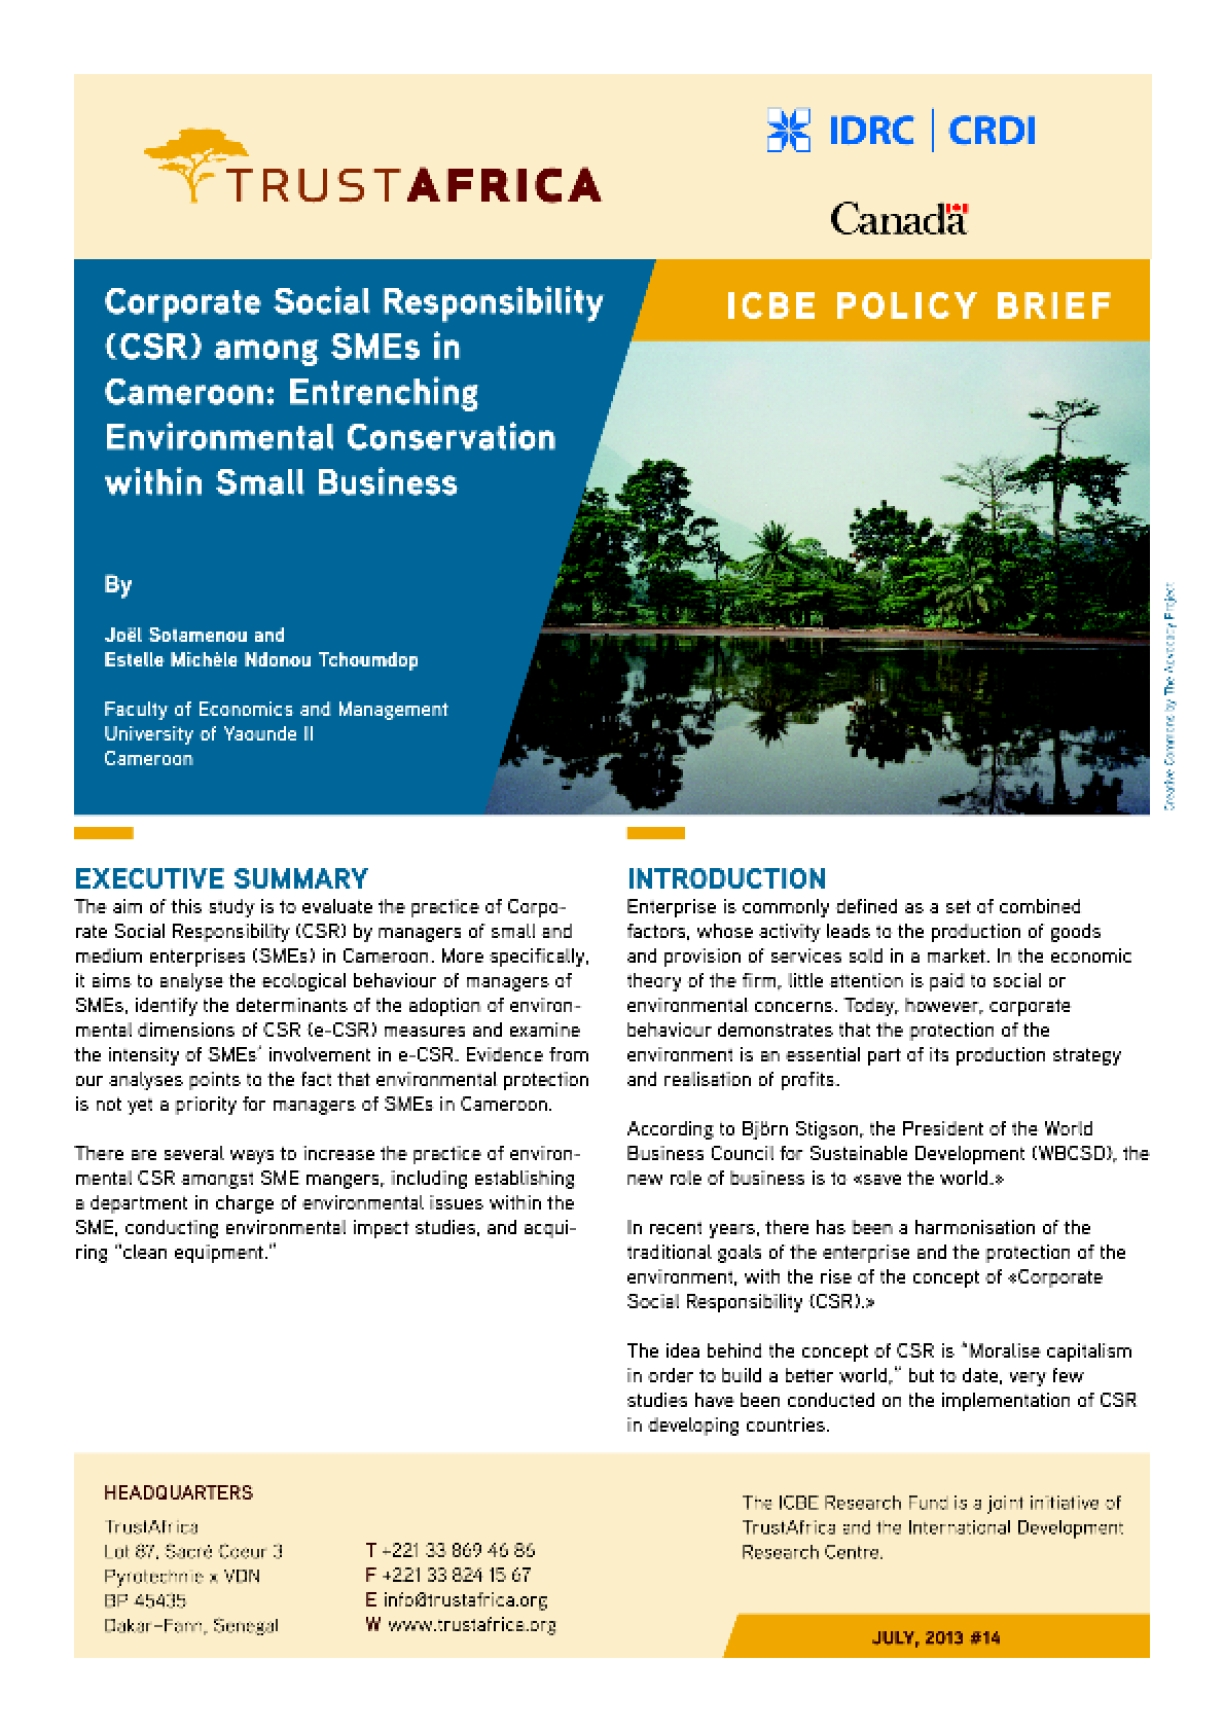 Corporate Social Responsibility (CSR) among SMEs in Cameroon: Entrenching Environmental Conservation within Small Business